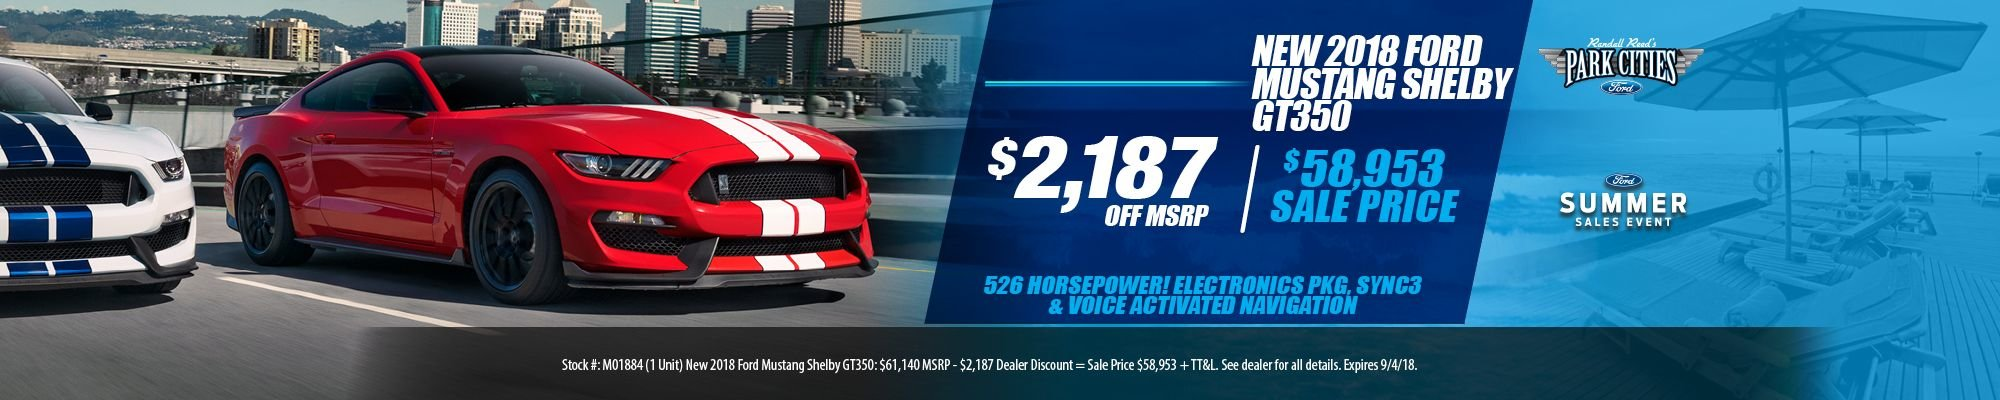 Special offer on 2018 Ford Mustang NEW 2018 FORD MUSTANG SHELBY GT350 SPECIAL!